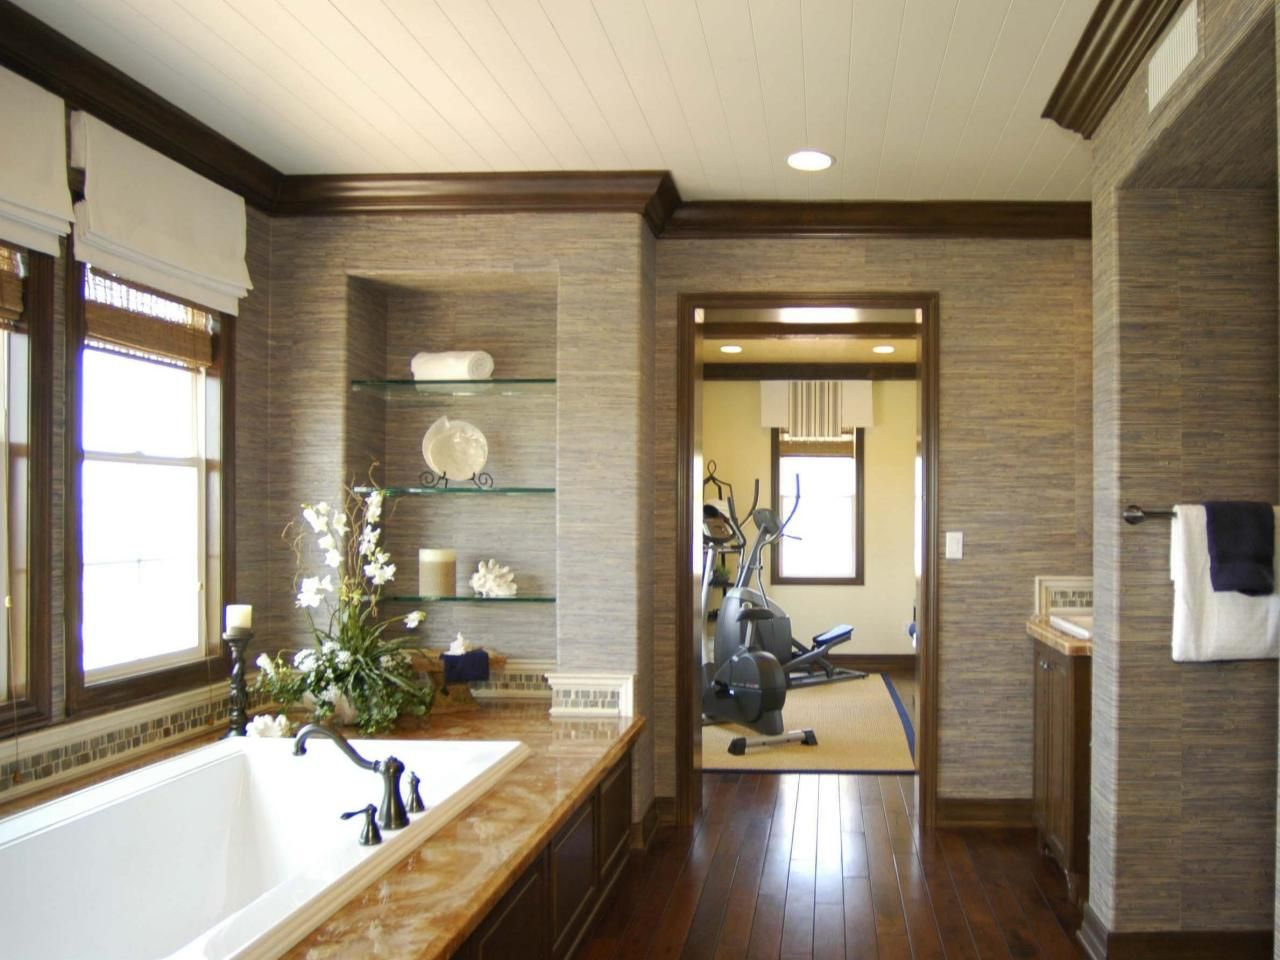 Attractive Textured Wallpaper Punctuated By Dark Wood Trim Gives This Luxurious  Bathroom An Earthy Feel.